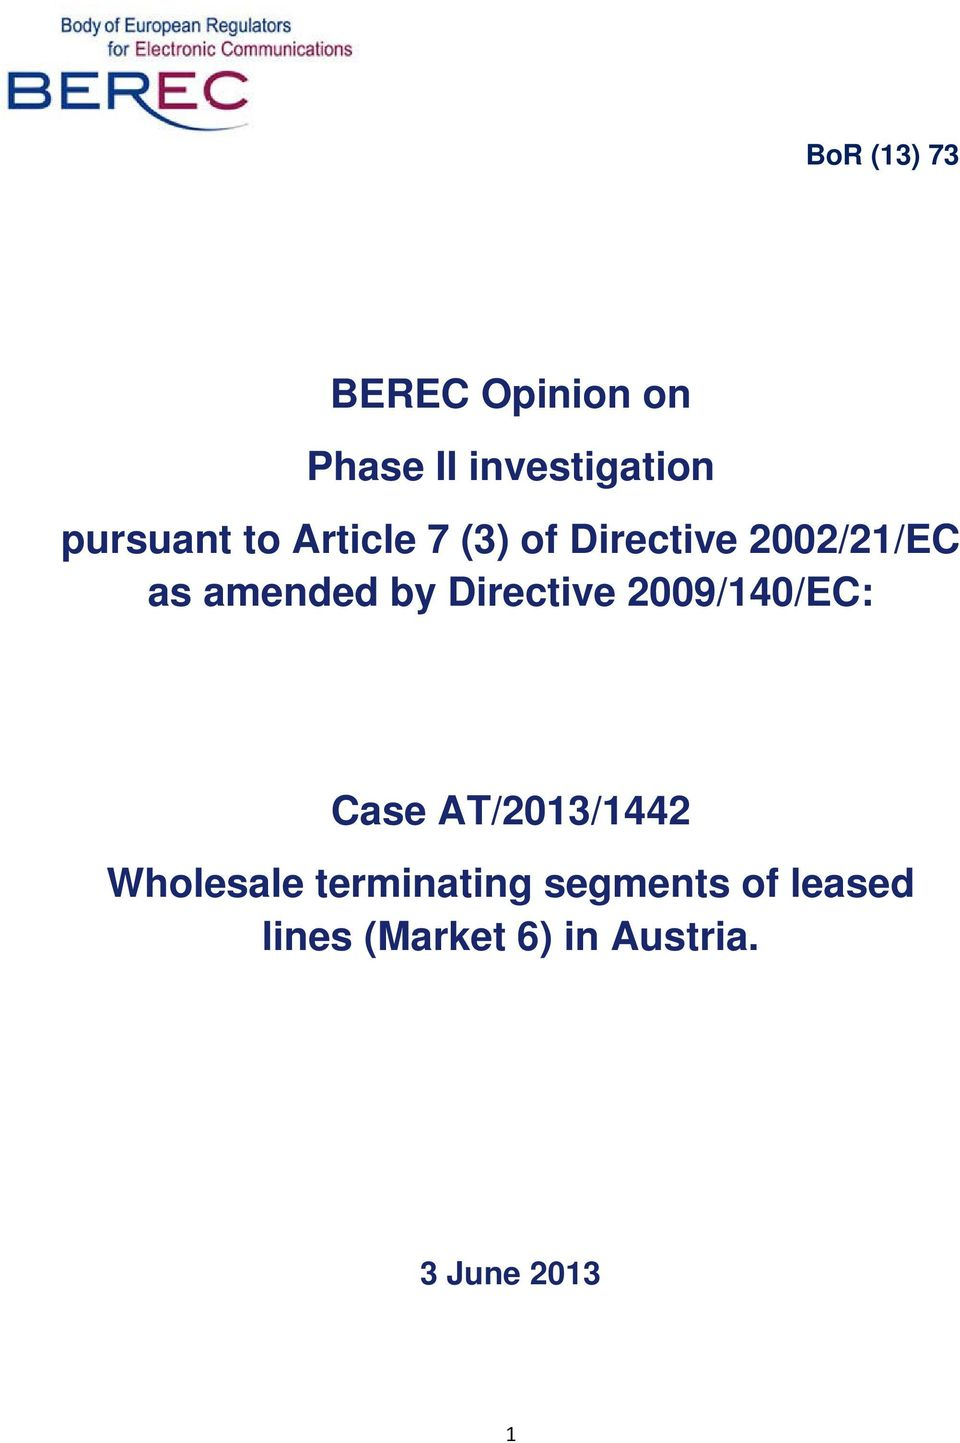 amended by Directive 2009/140/EC: Case AT/2013/1442